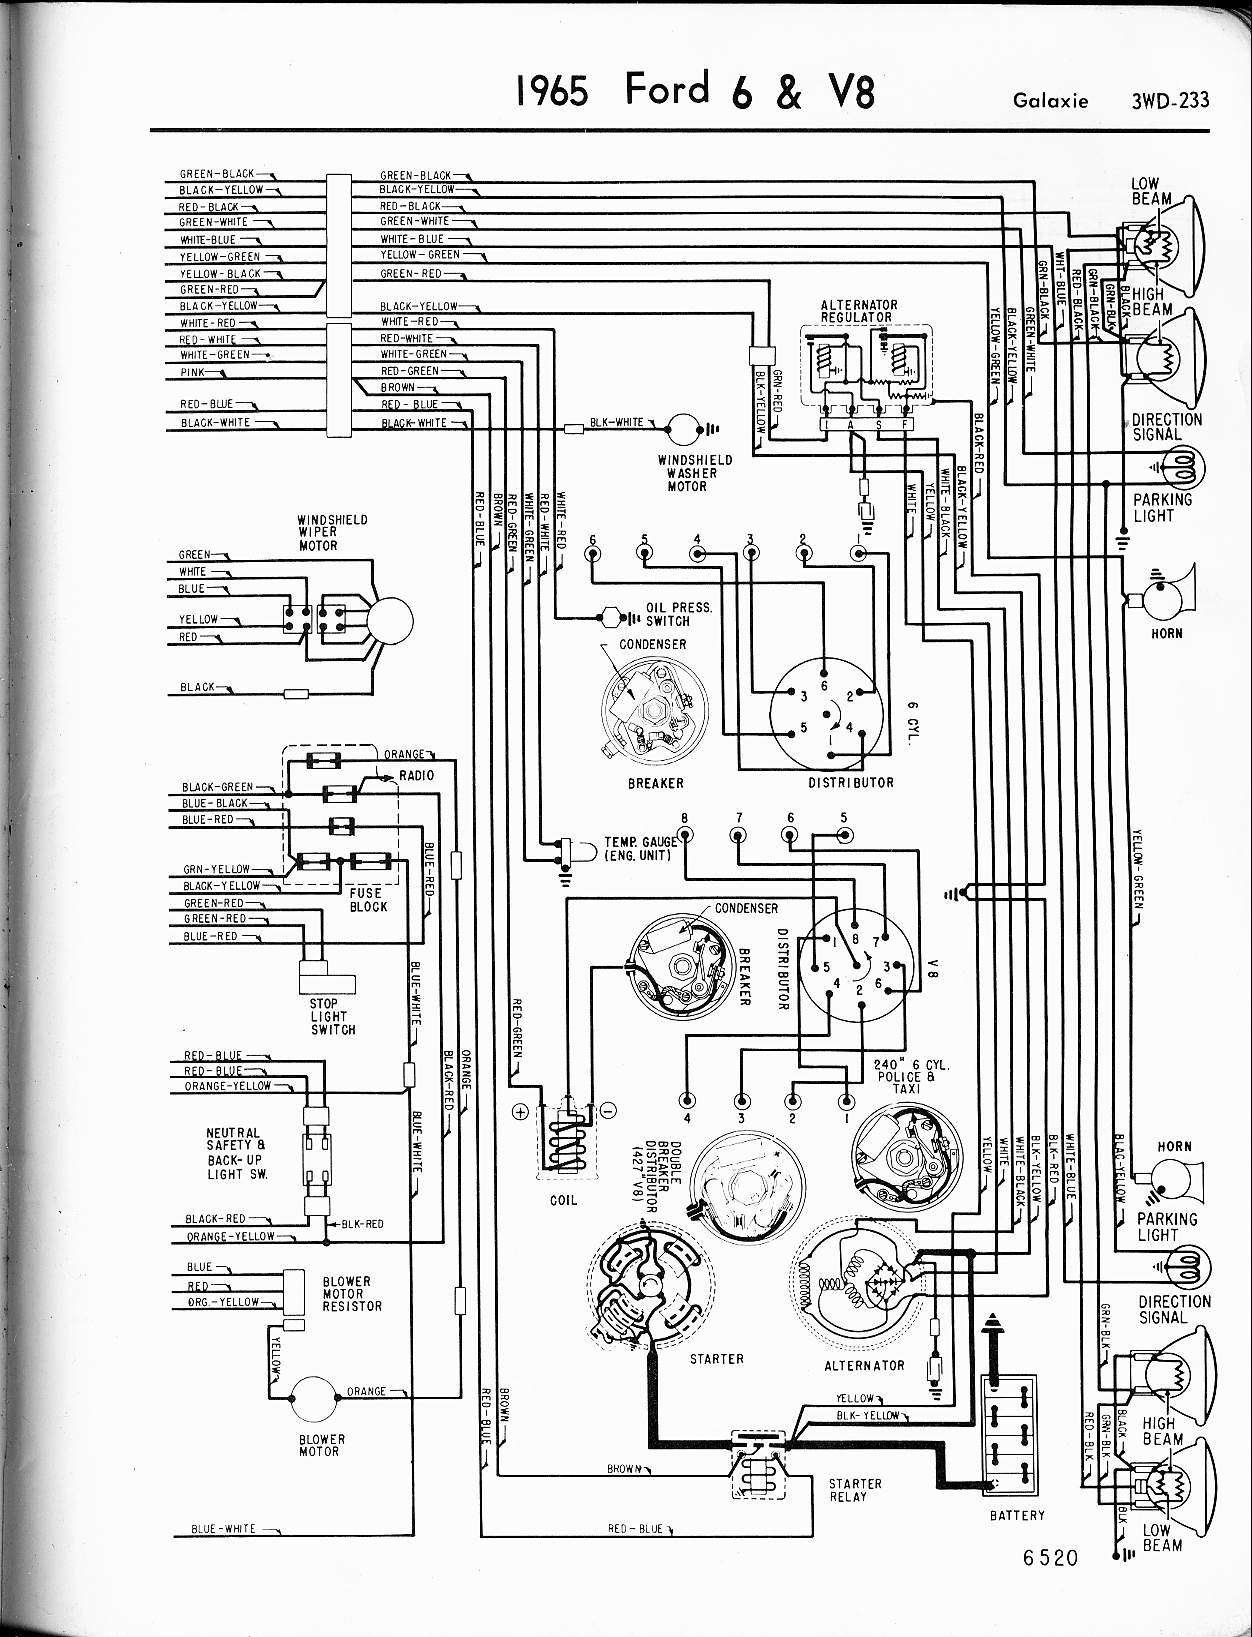 Outstanding 64 Cj5 Wiring Diagram Wiring Diagram Database Wiring Digital Resources Lavecompassionincorg